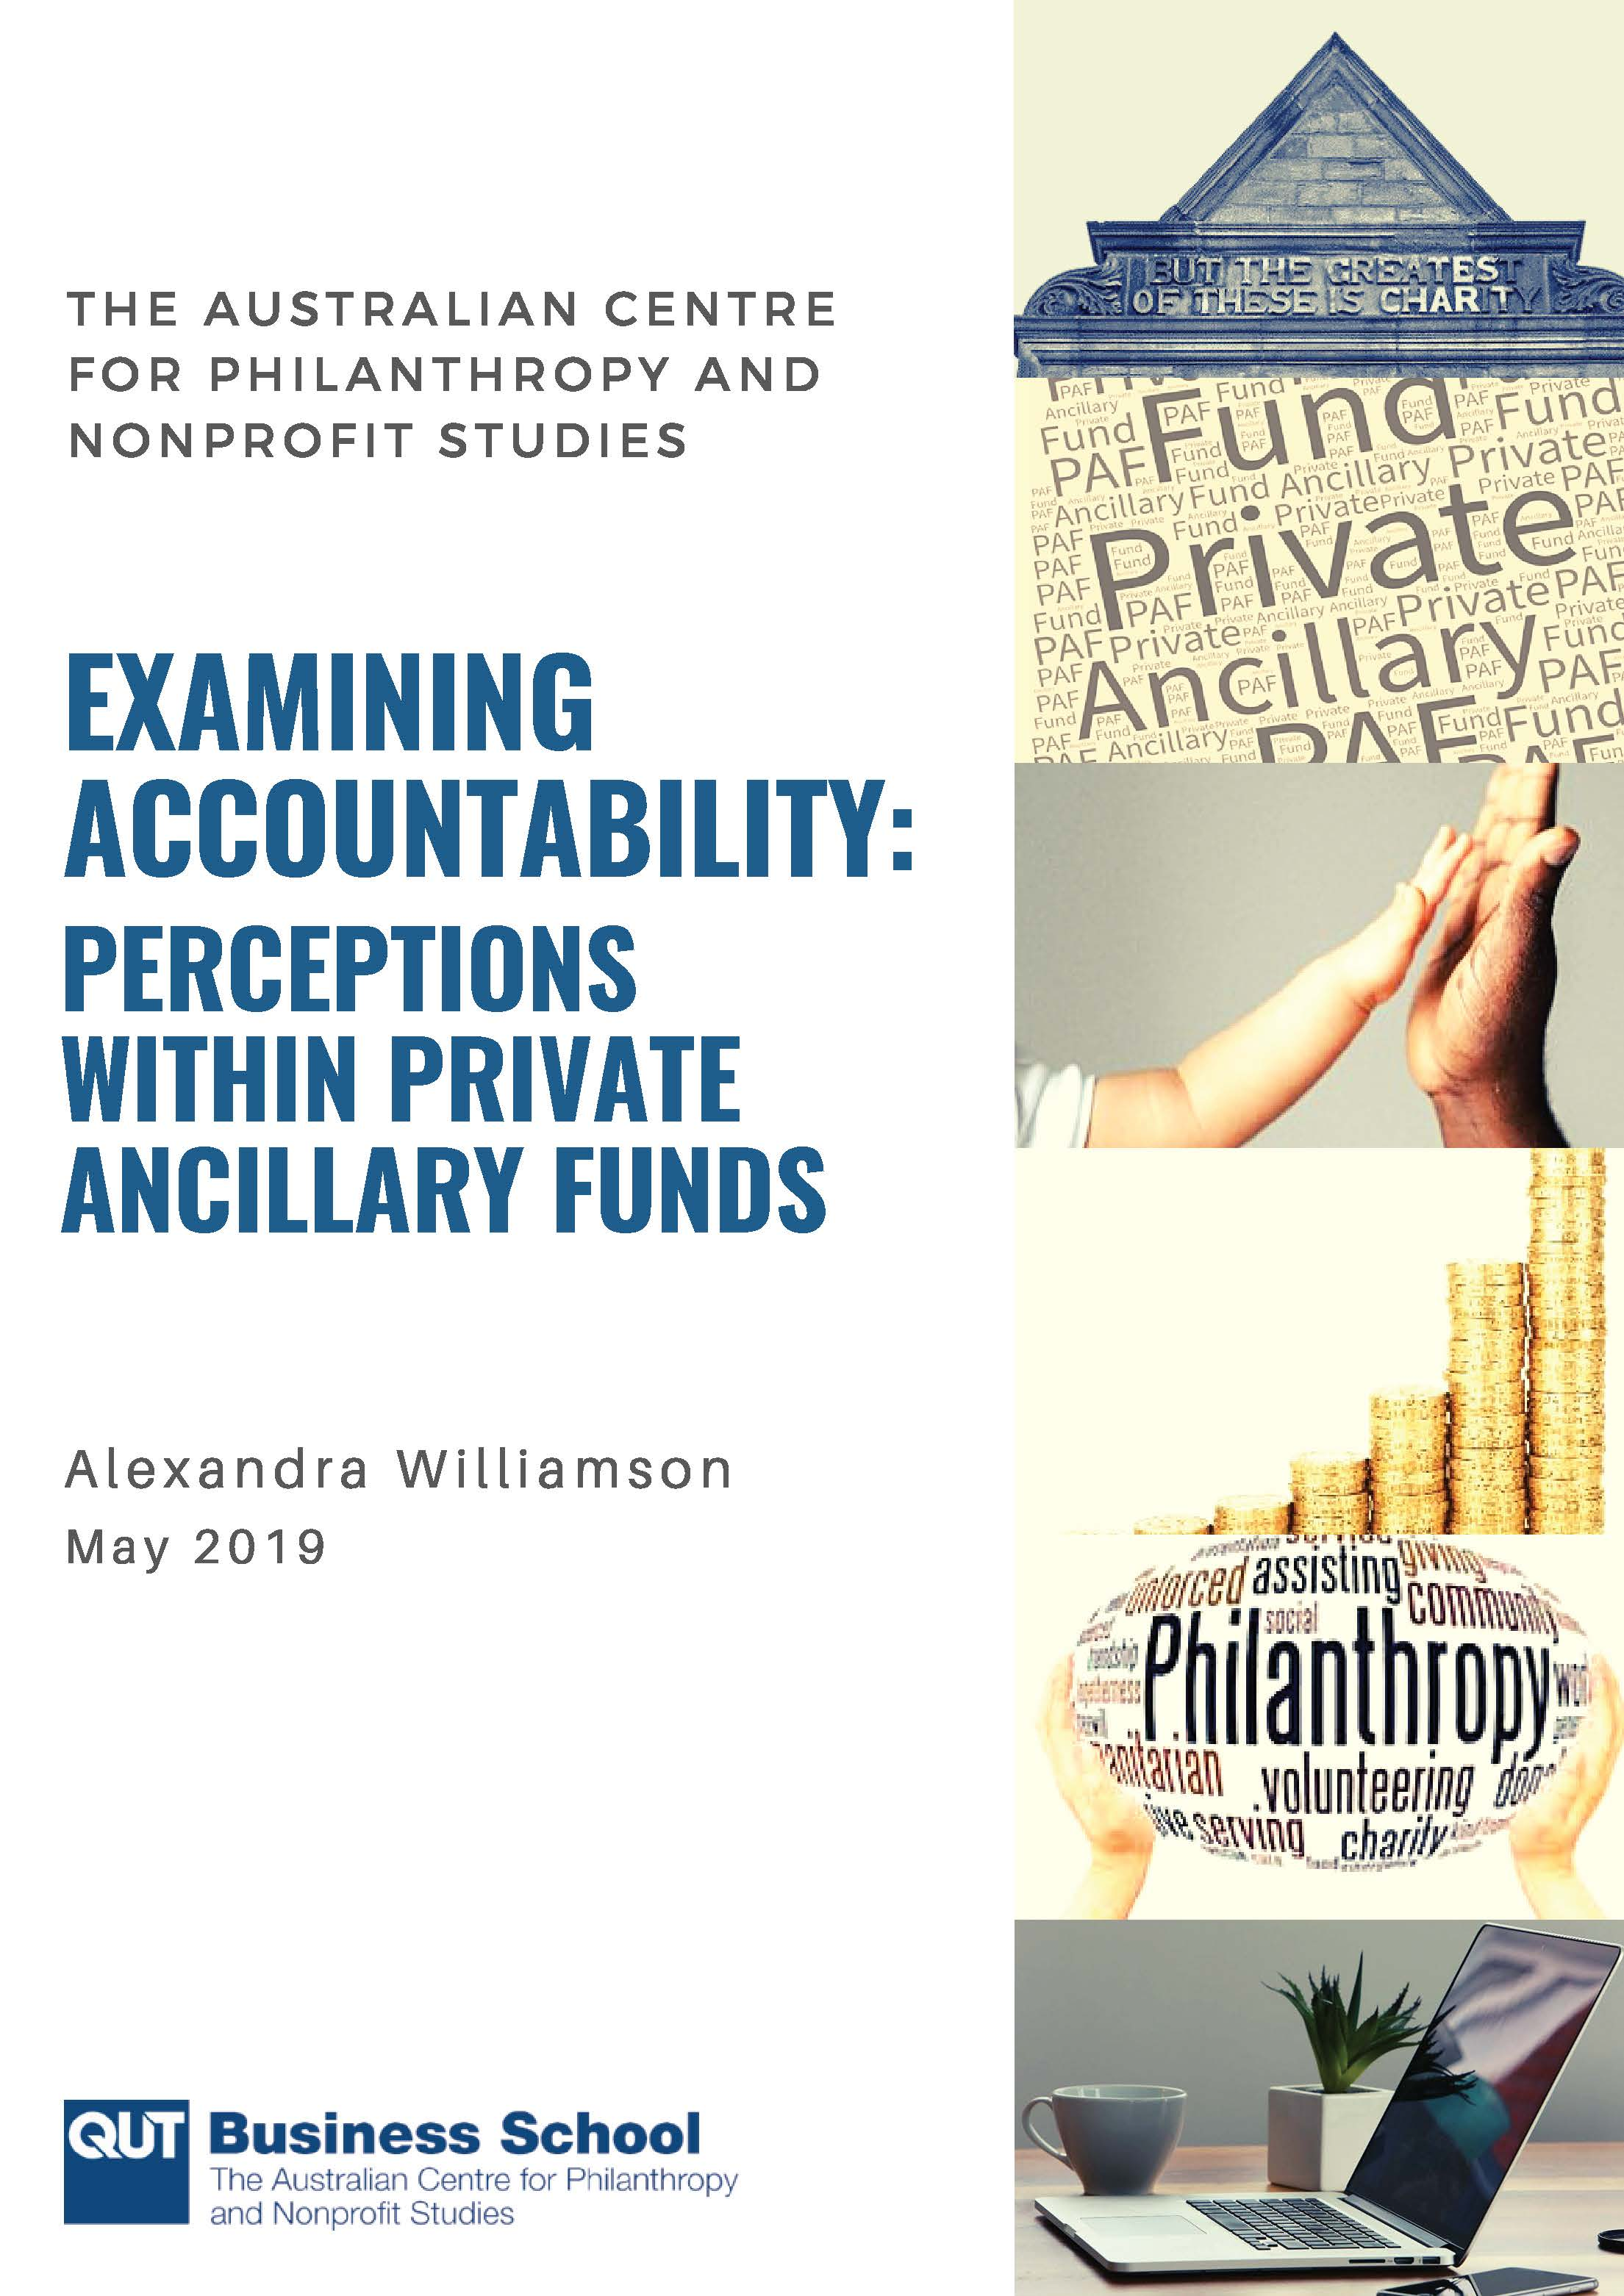 Examining accountability: Perceptions within private ancillary funds